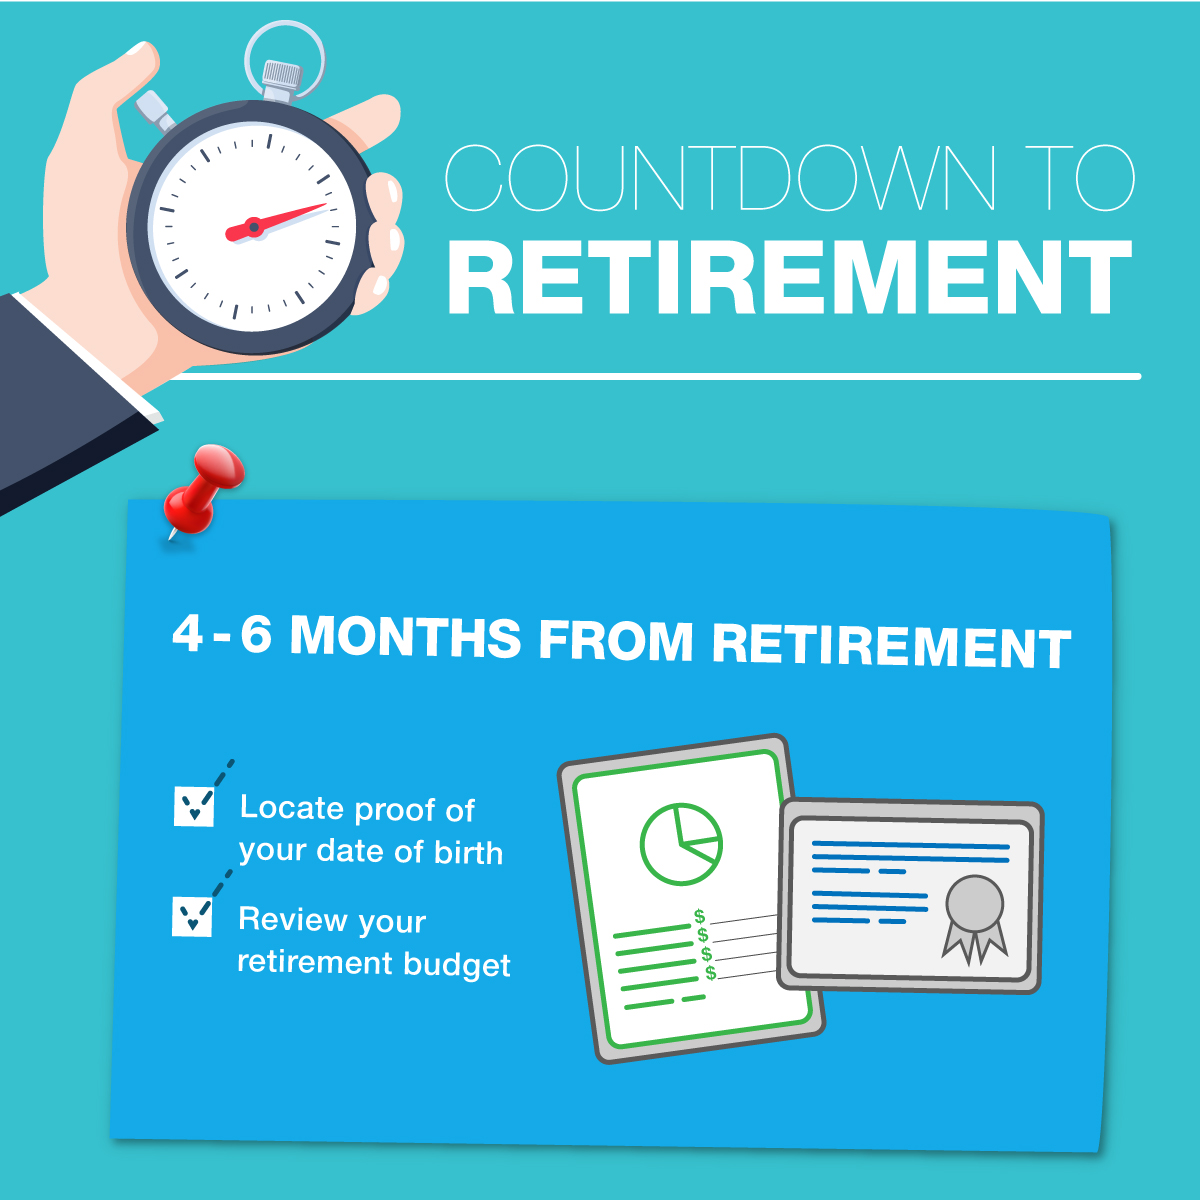 Countdown to Retirement - 4-6 months to go